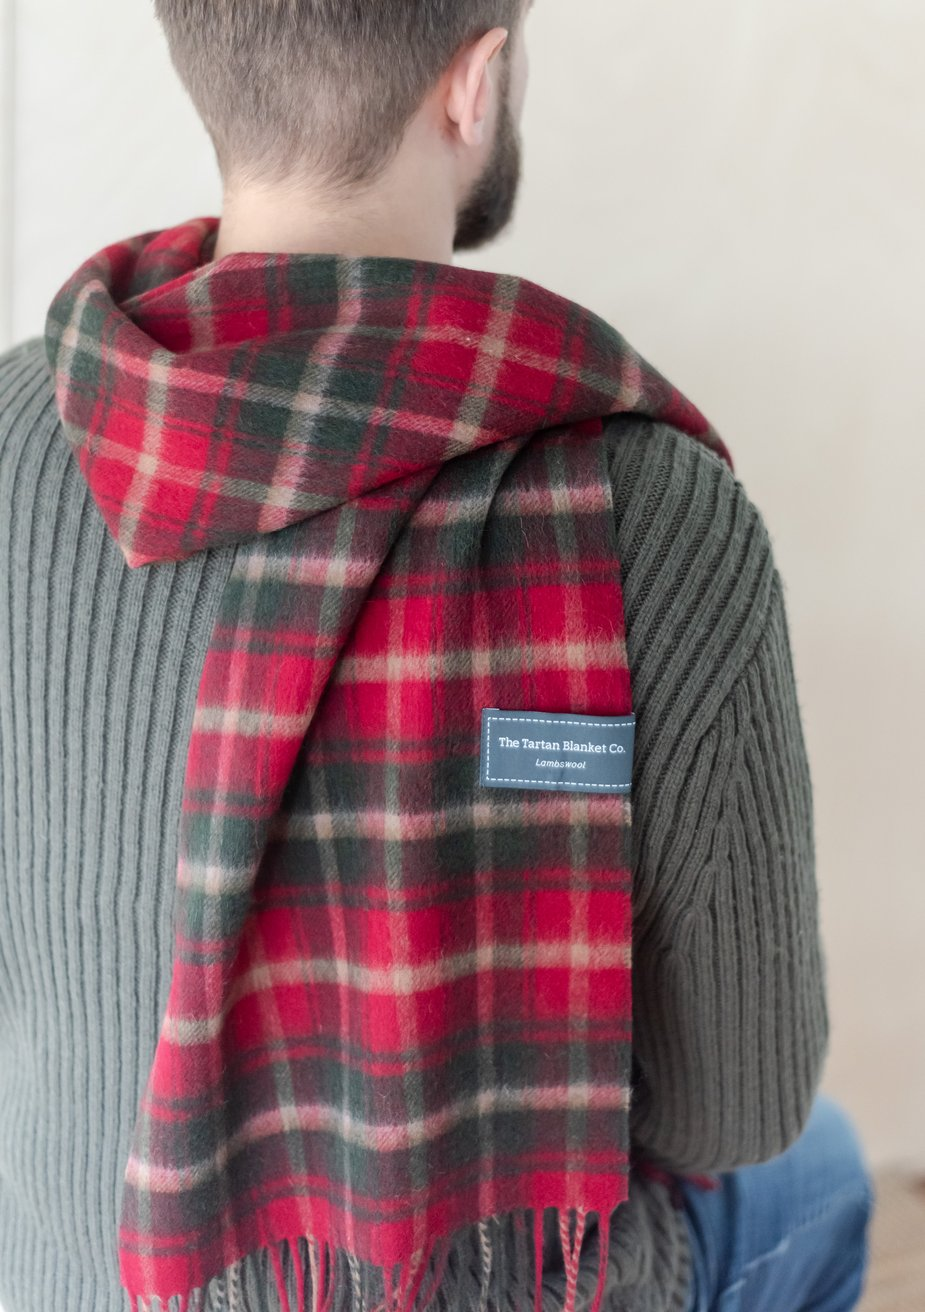 The Blanket Co men's product